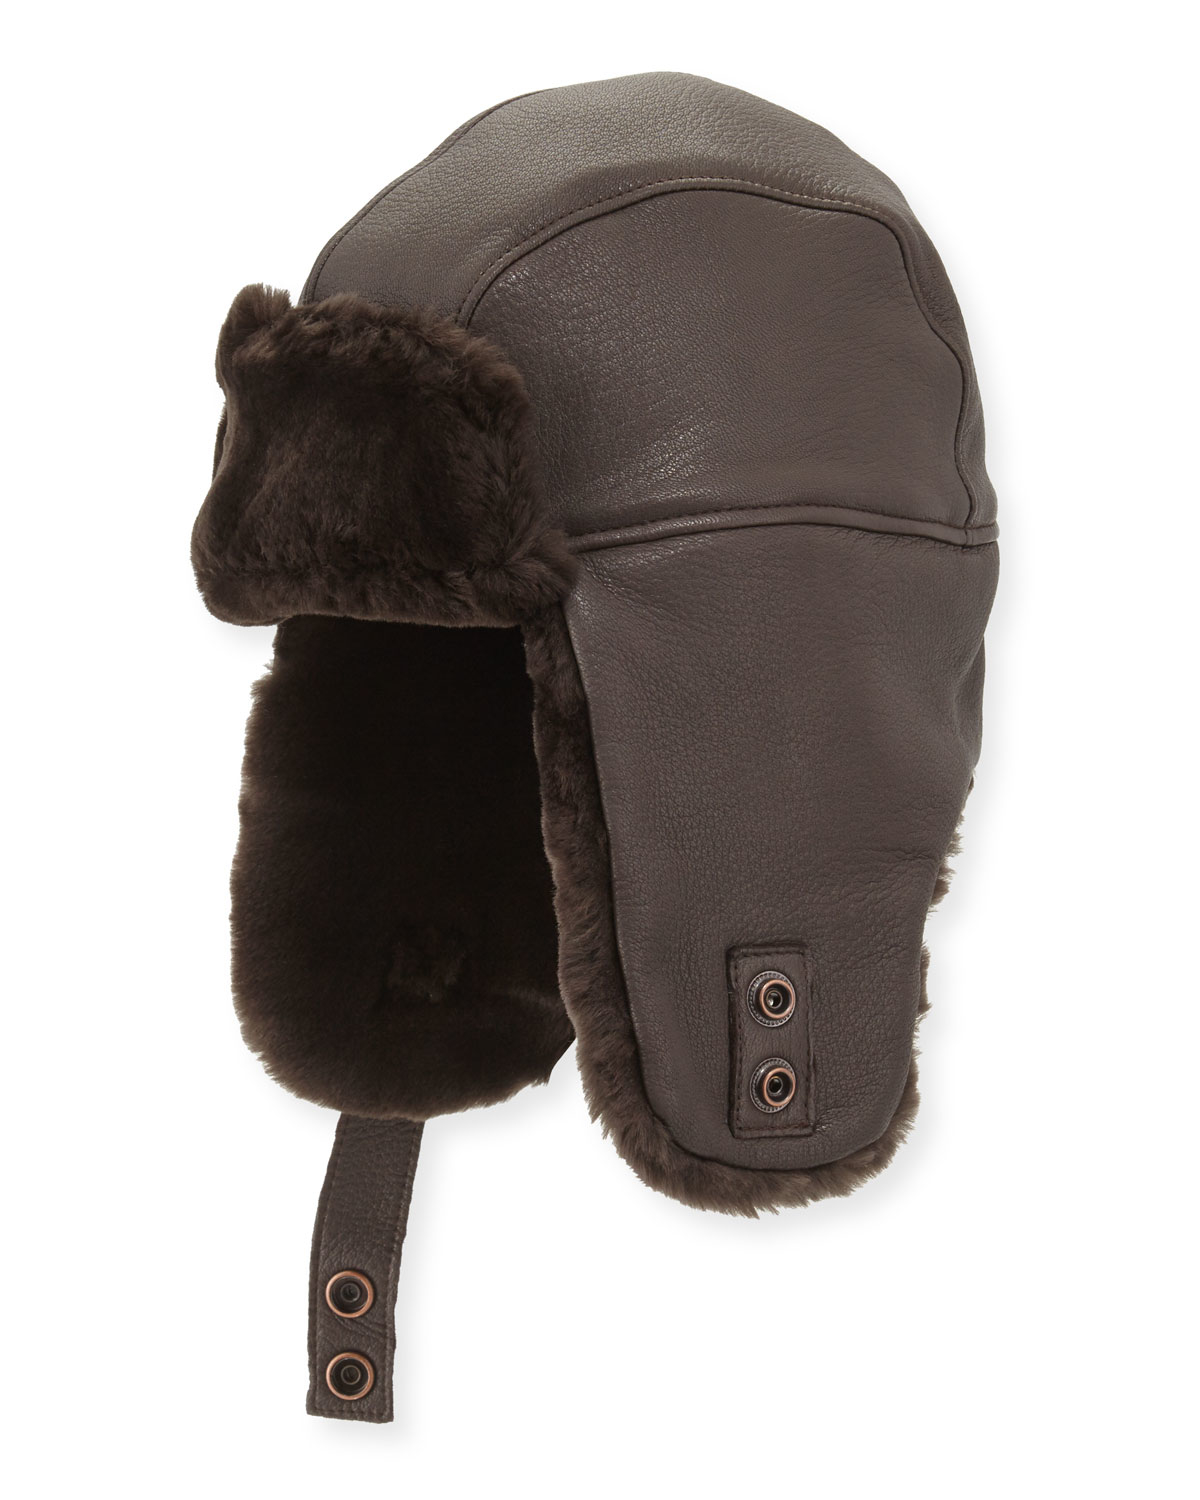 25c58c49a8b Lyst - UGG Corbett Leather Trapper Hat in Brown